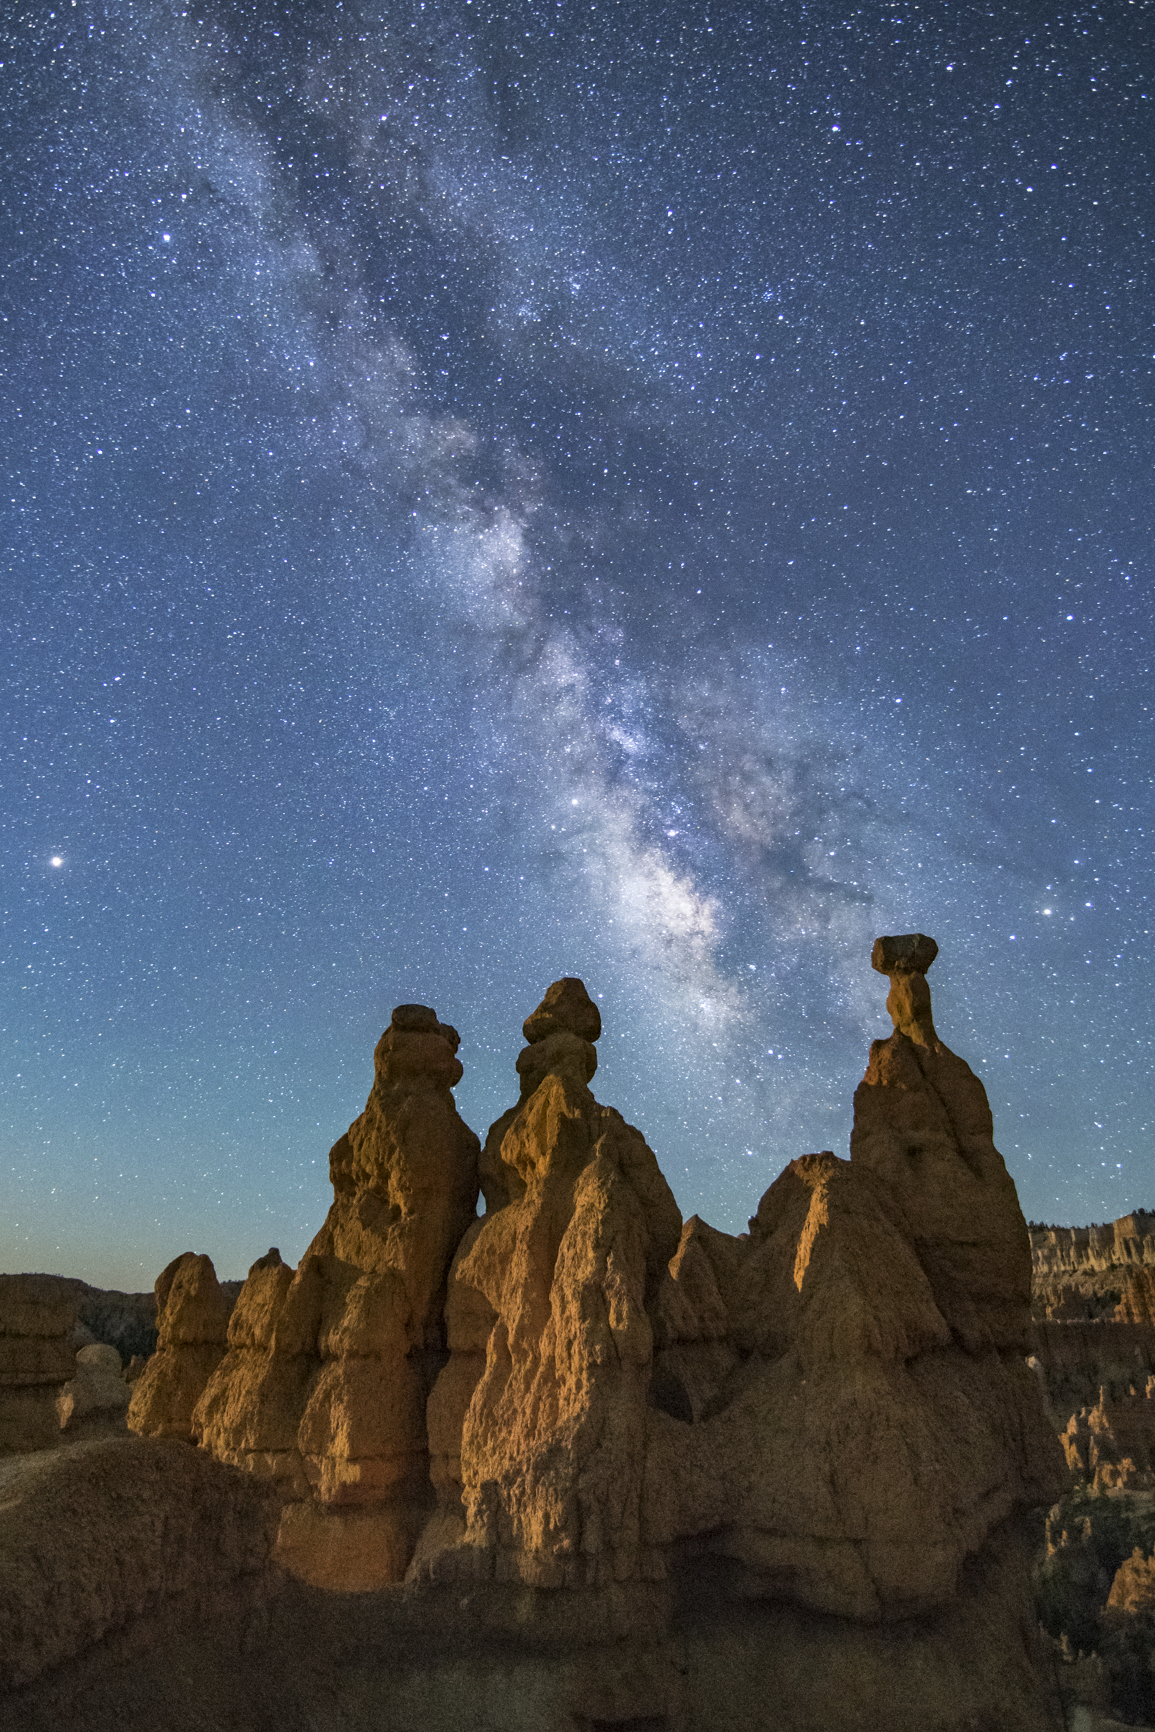 Hoodoo Formations with Moonlight and Milky Way in Bryce